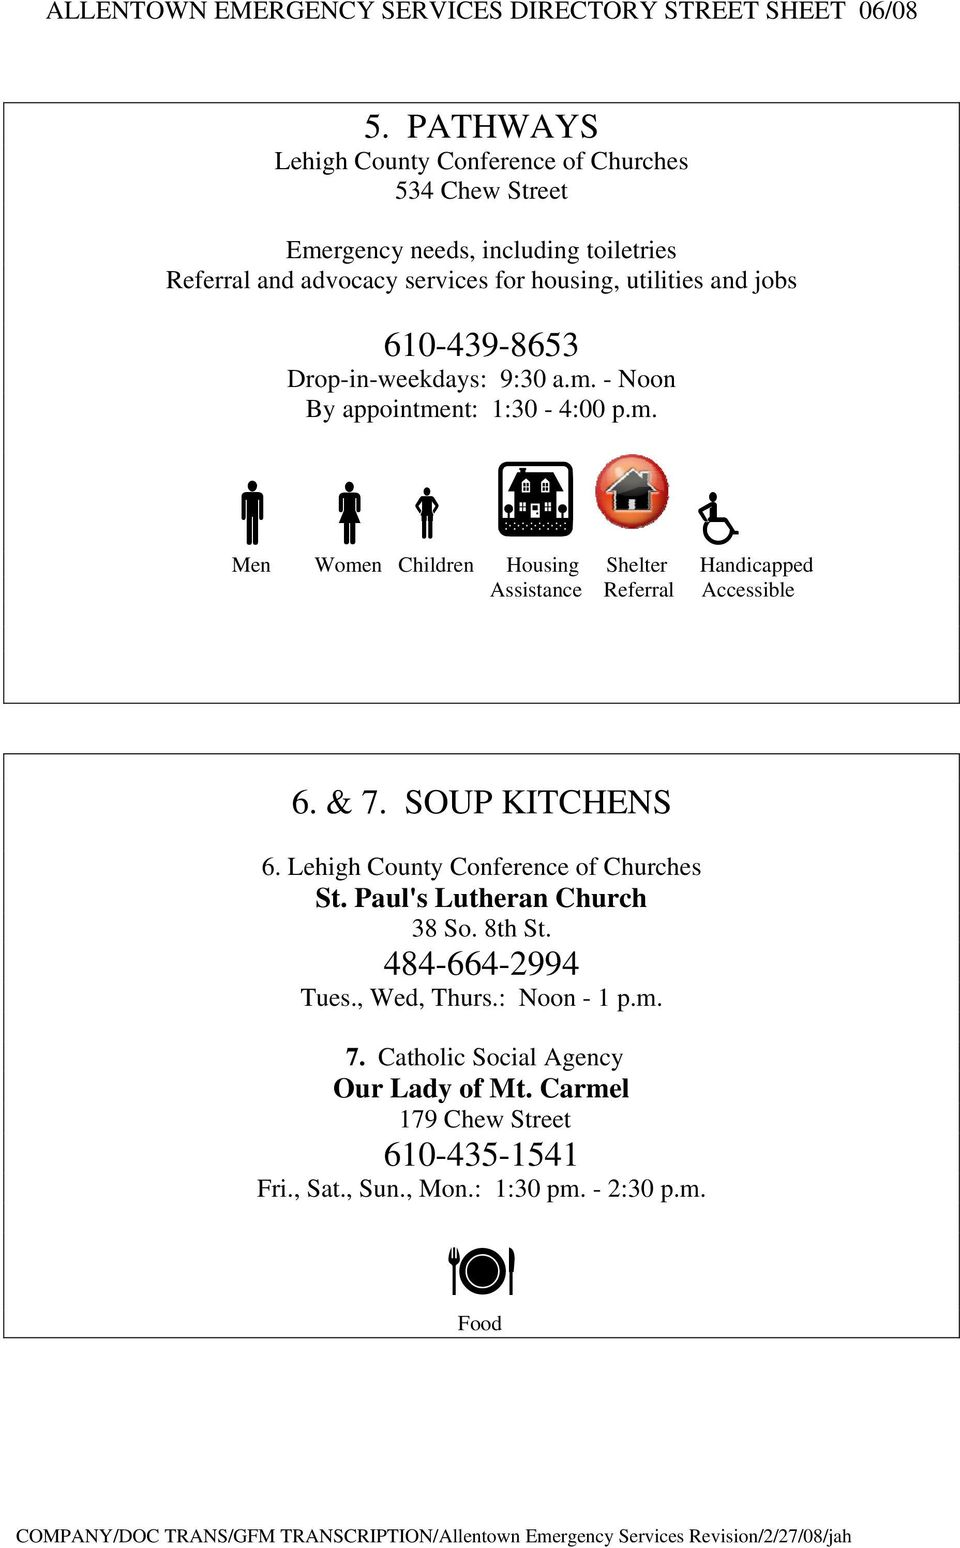 & 7. SOUP KITCHENS 6. St. Paul's Lutheran Church 38 So. 8th St. 484-664-2994 Tues., Wed, Thurs.: Noon - 1 p.m. 7. Catholic Social Agency Our Lady of Mt.